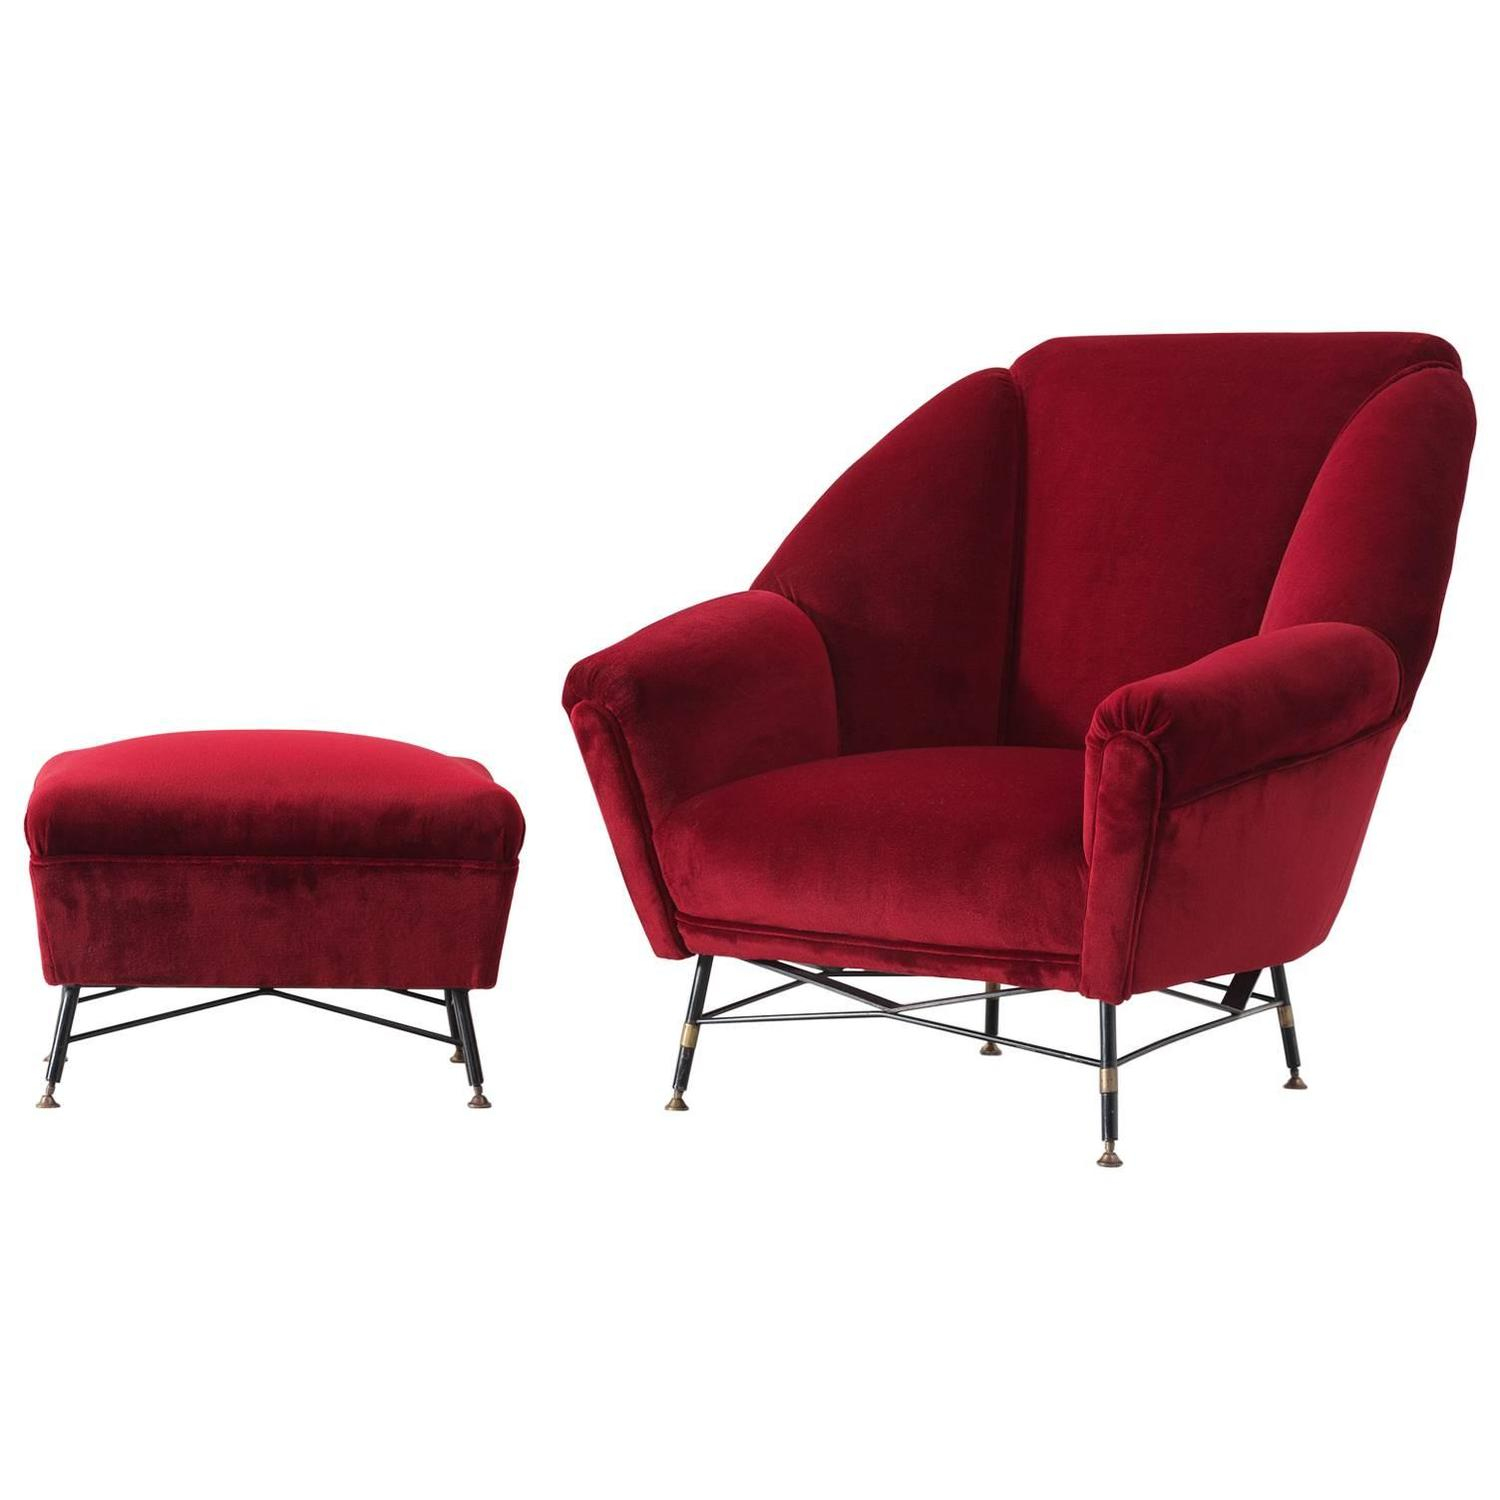 Italian Red Velvet Lounge Chair with Ac panying Ottoman For Sale